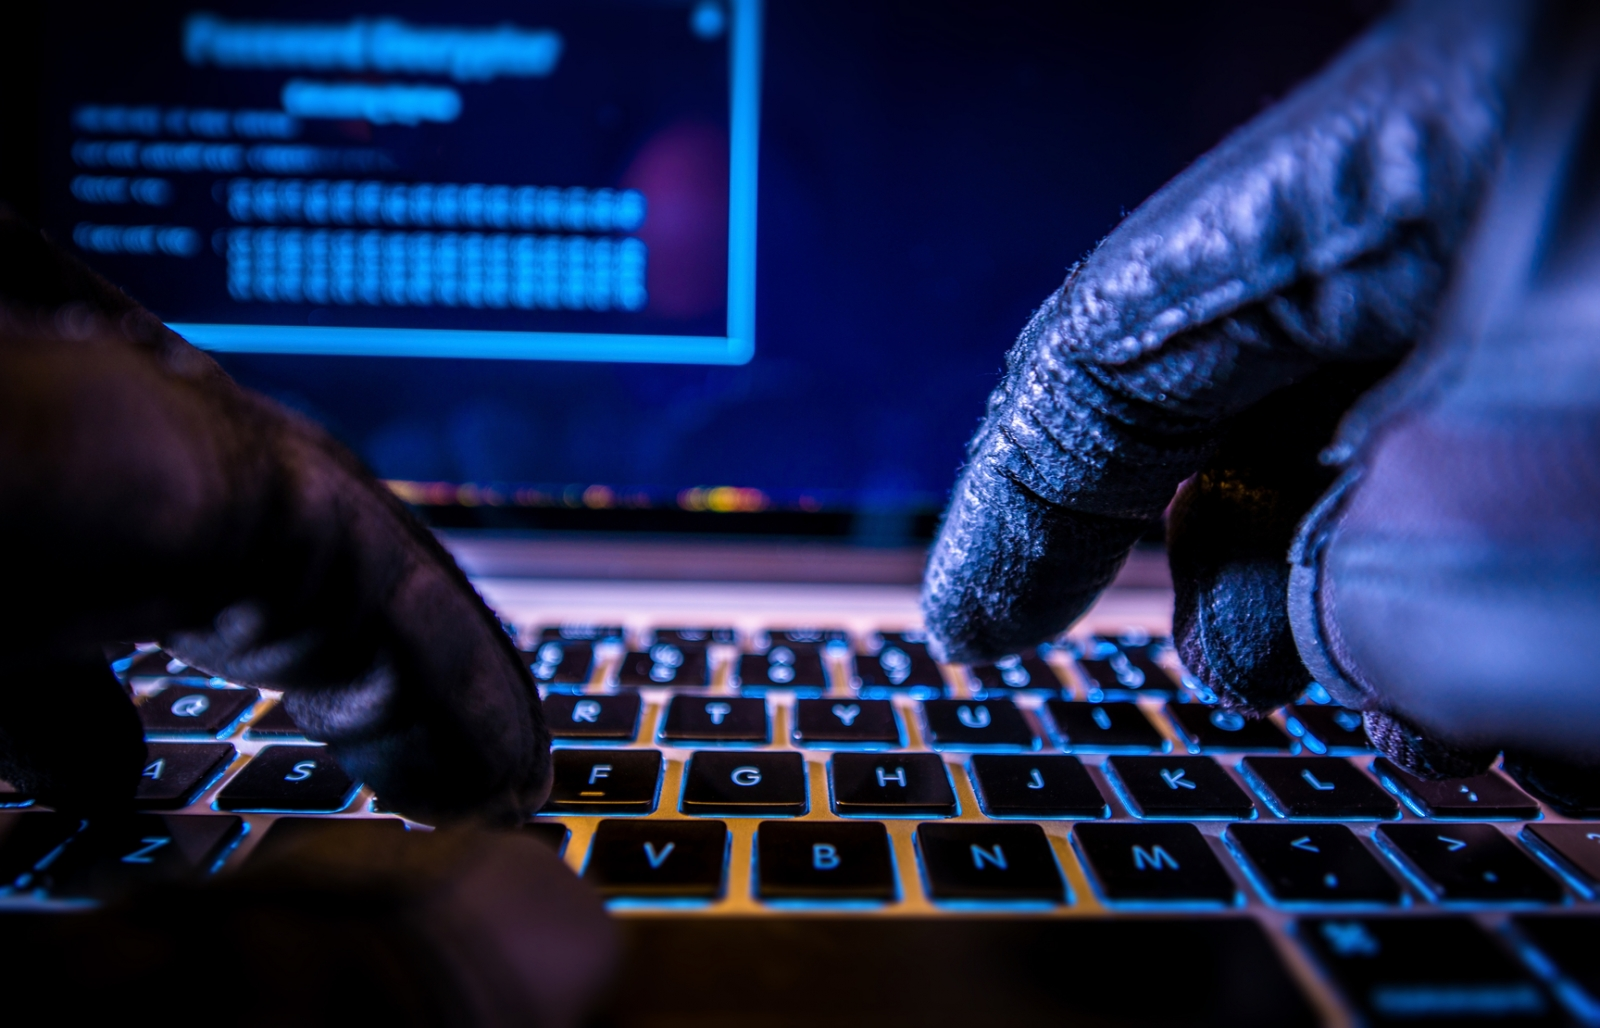 Russia fended off 70m cyberattacks from foreign hackers says FSB - report